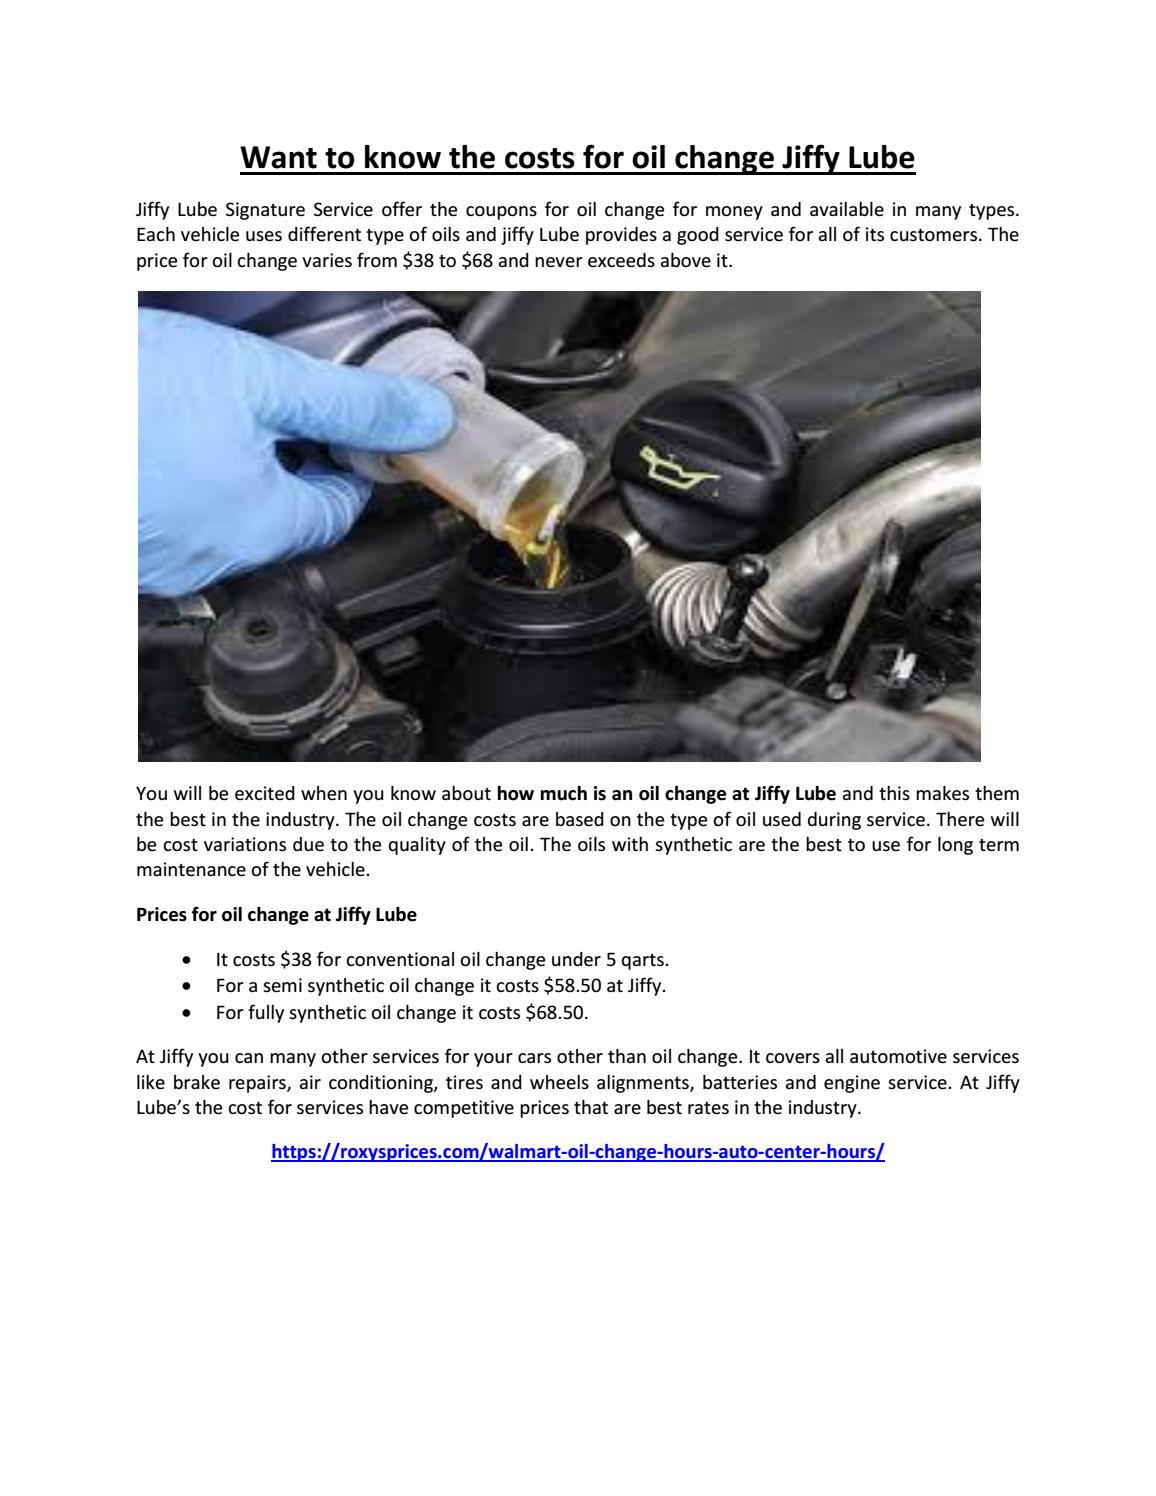 How Much Is An Oil Change >> Roxys Place For All Prices By Aish Das Issuu